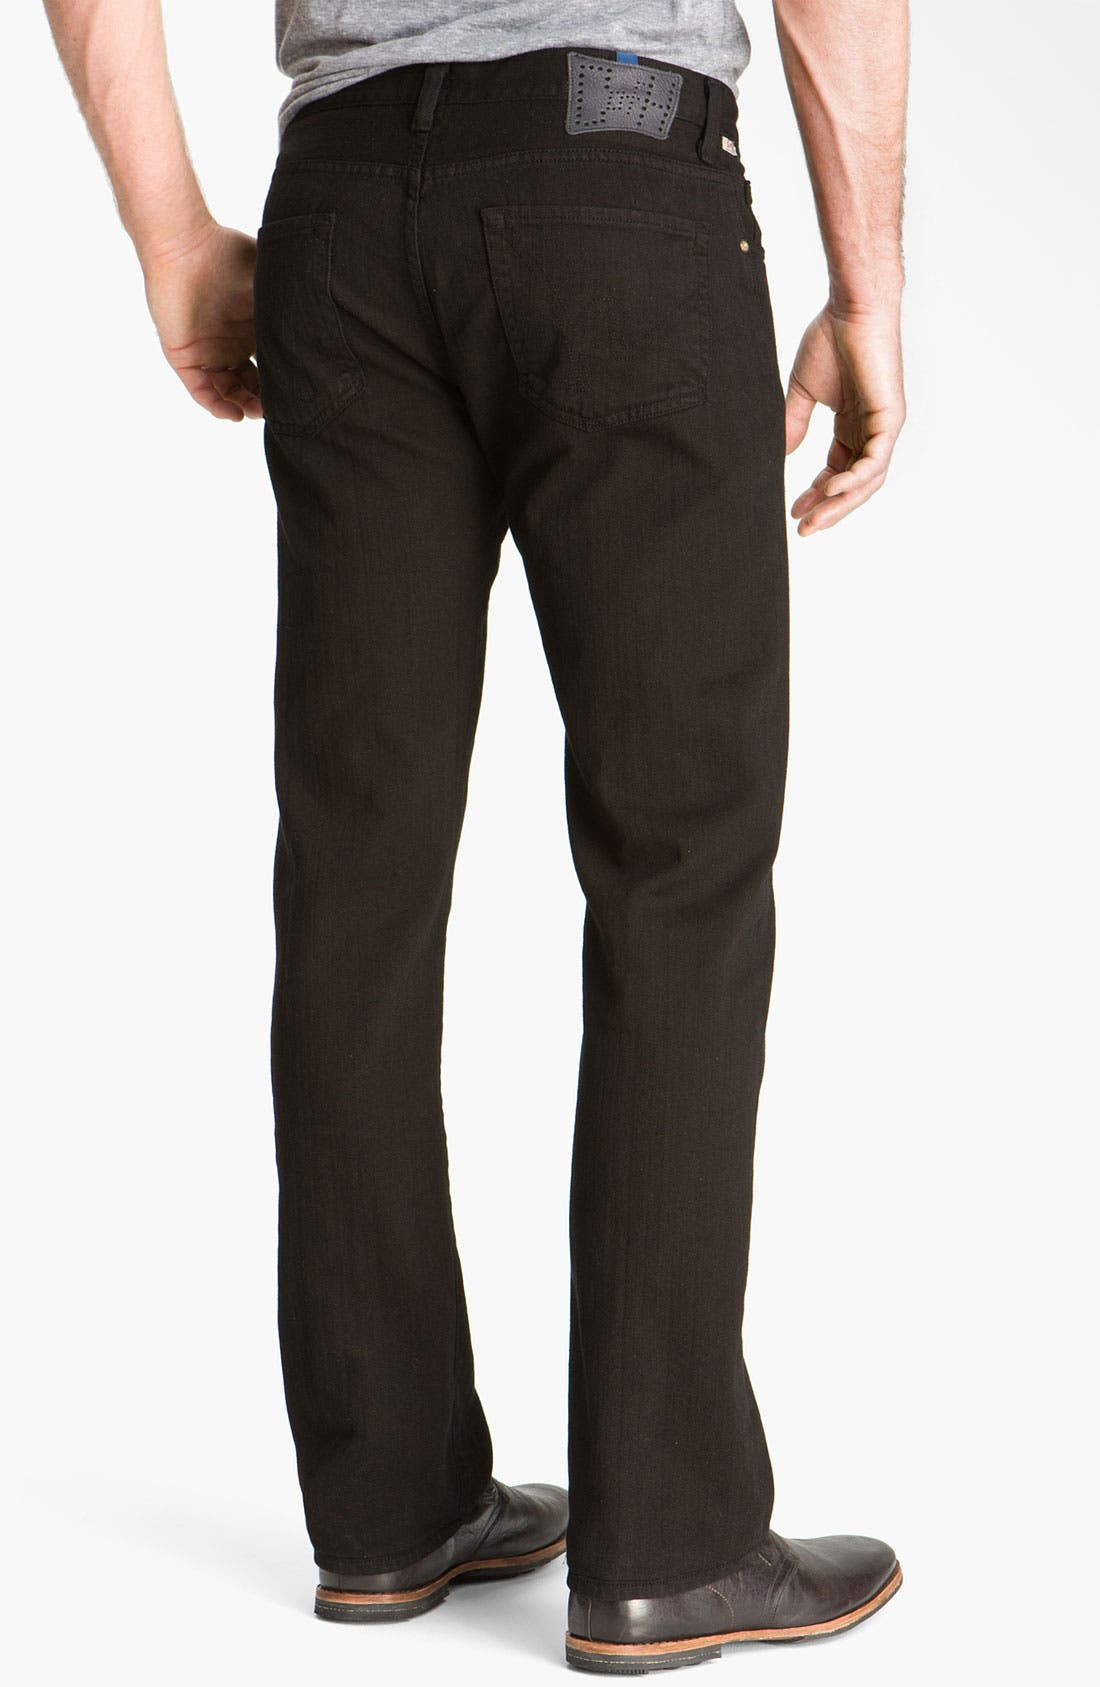 Alternate Image 1 Selected - Citizens of Humanity 'Sid' Straight Leg Jeans (Black)